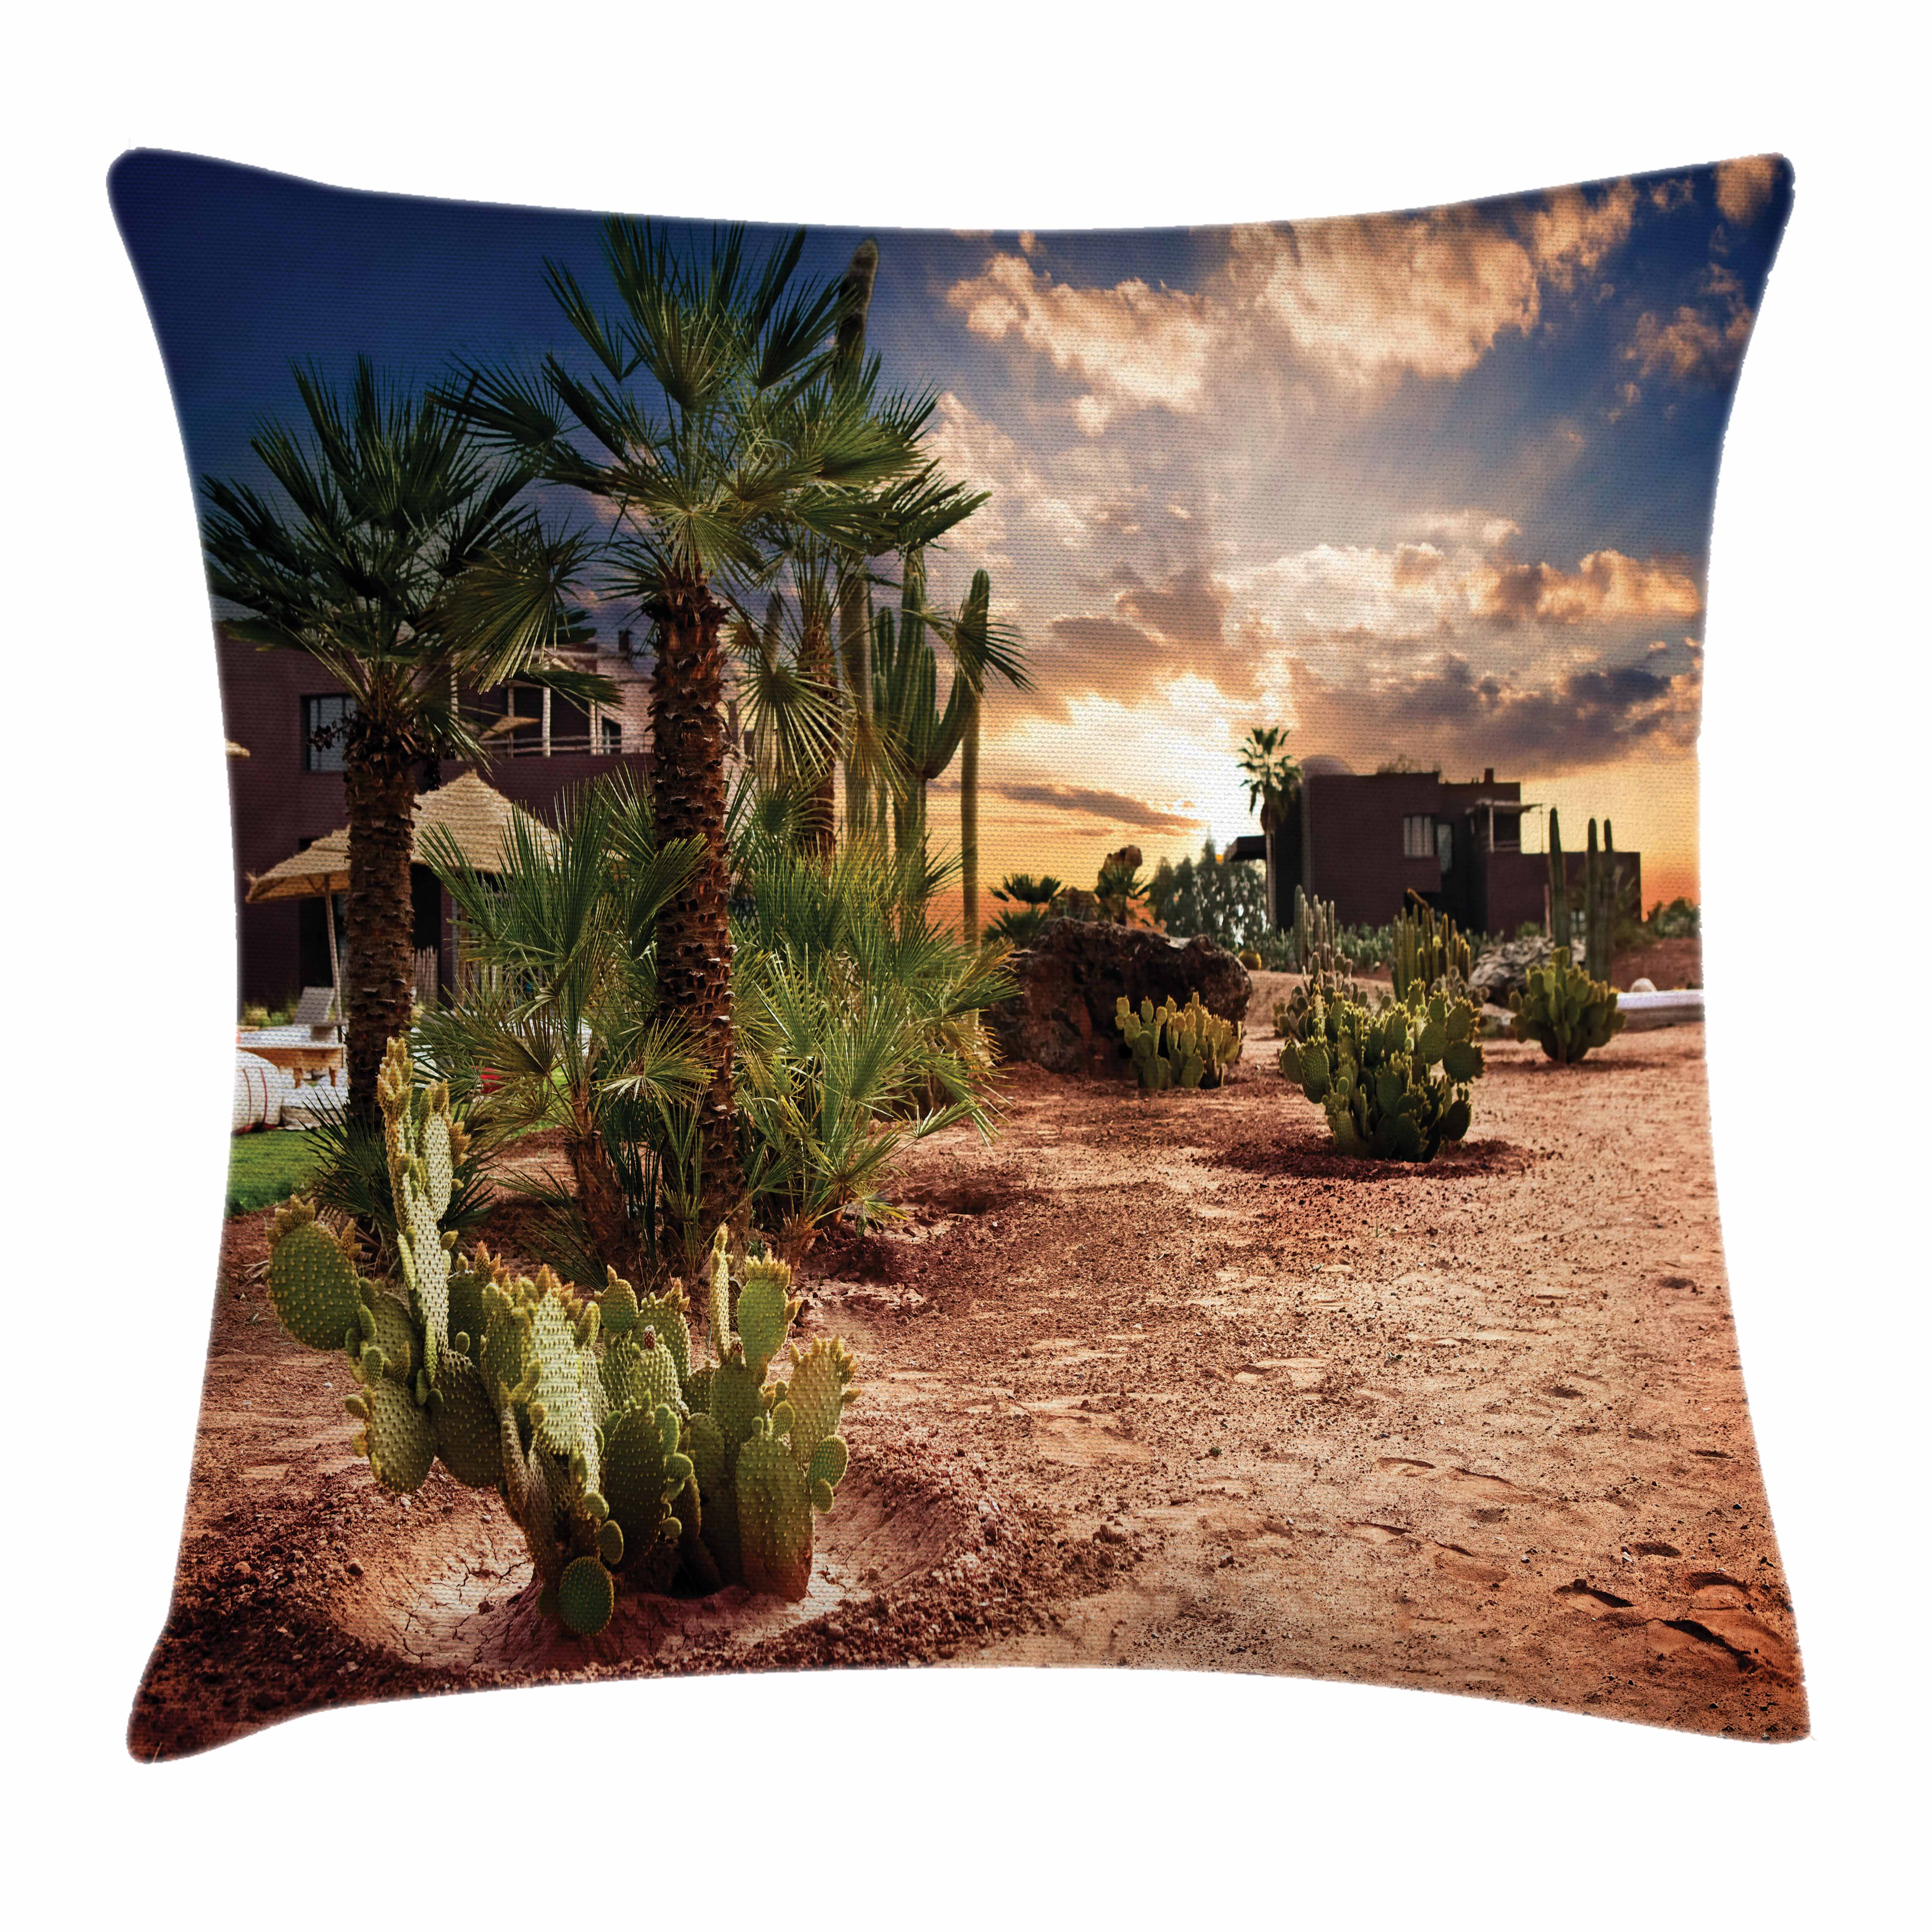 Desert Throw Pillow Cushion Cover, Majestic Sky View Palm Trees and Cactus in Oasis Morocco Tropic Nature, Decorative Square Accent Pillow Case, 16 X 16 Inches, Blue Green Pale Brown, by Ambesonne